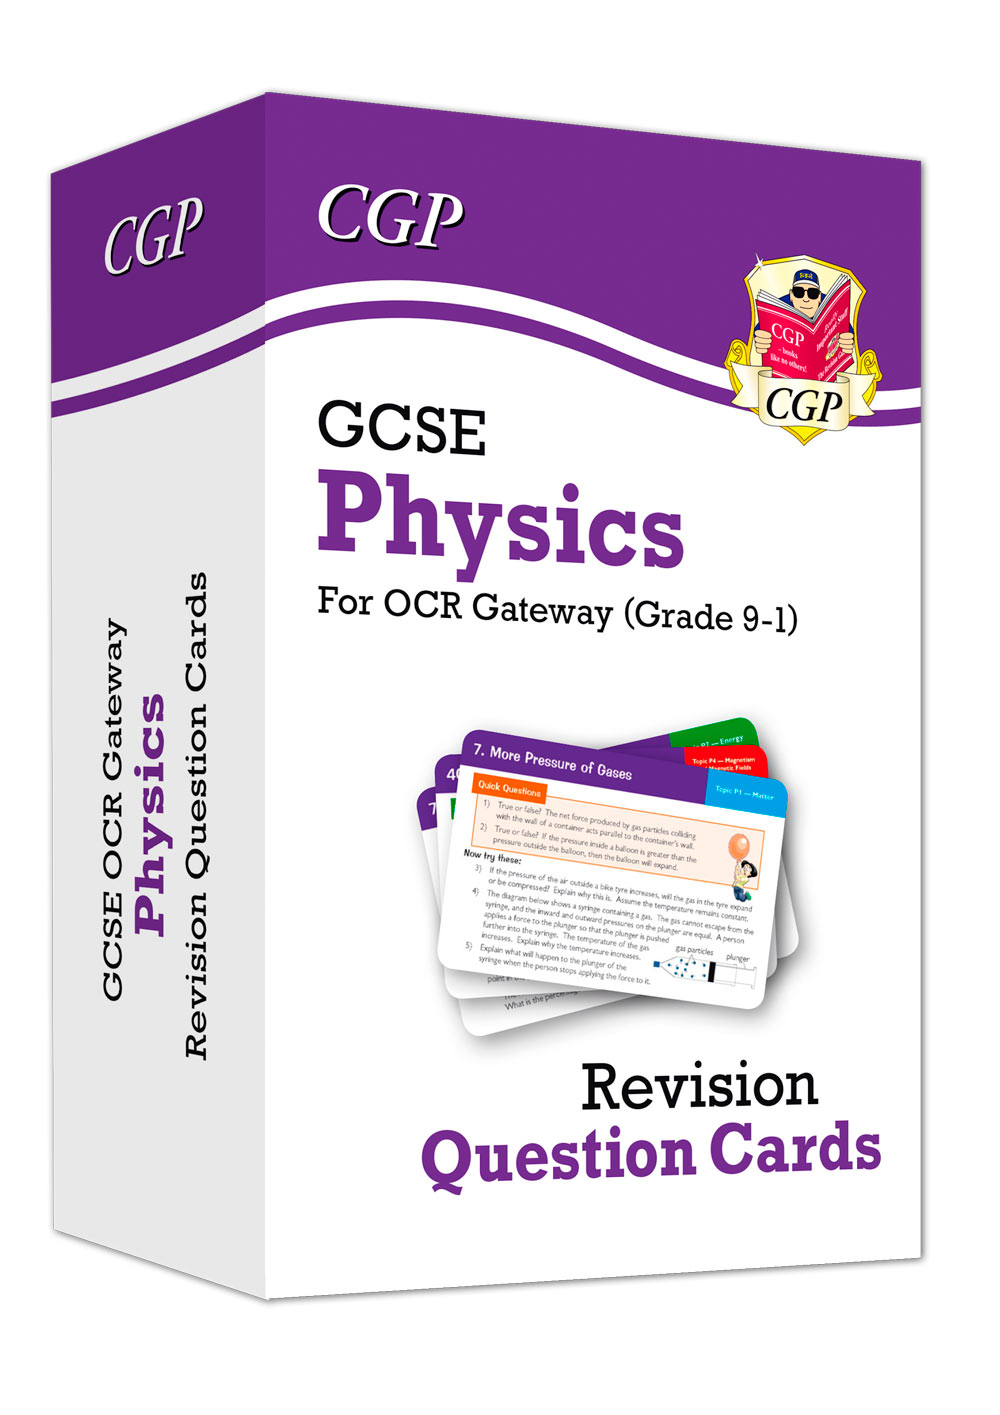 9-1 GCSE Science Revision Question Cards | CGP Books